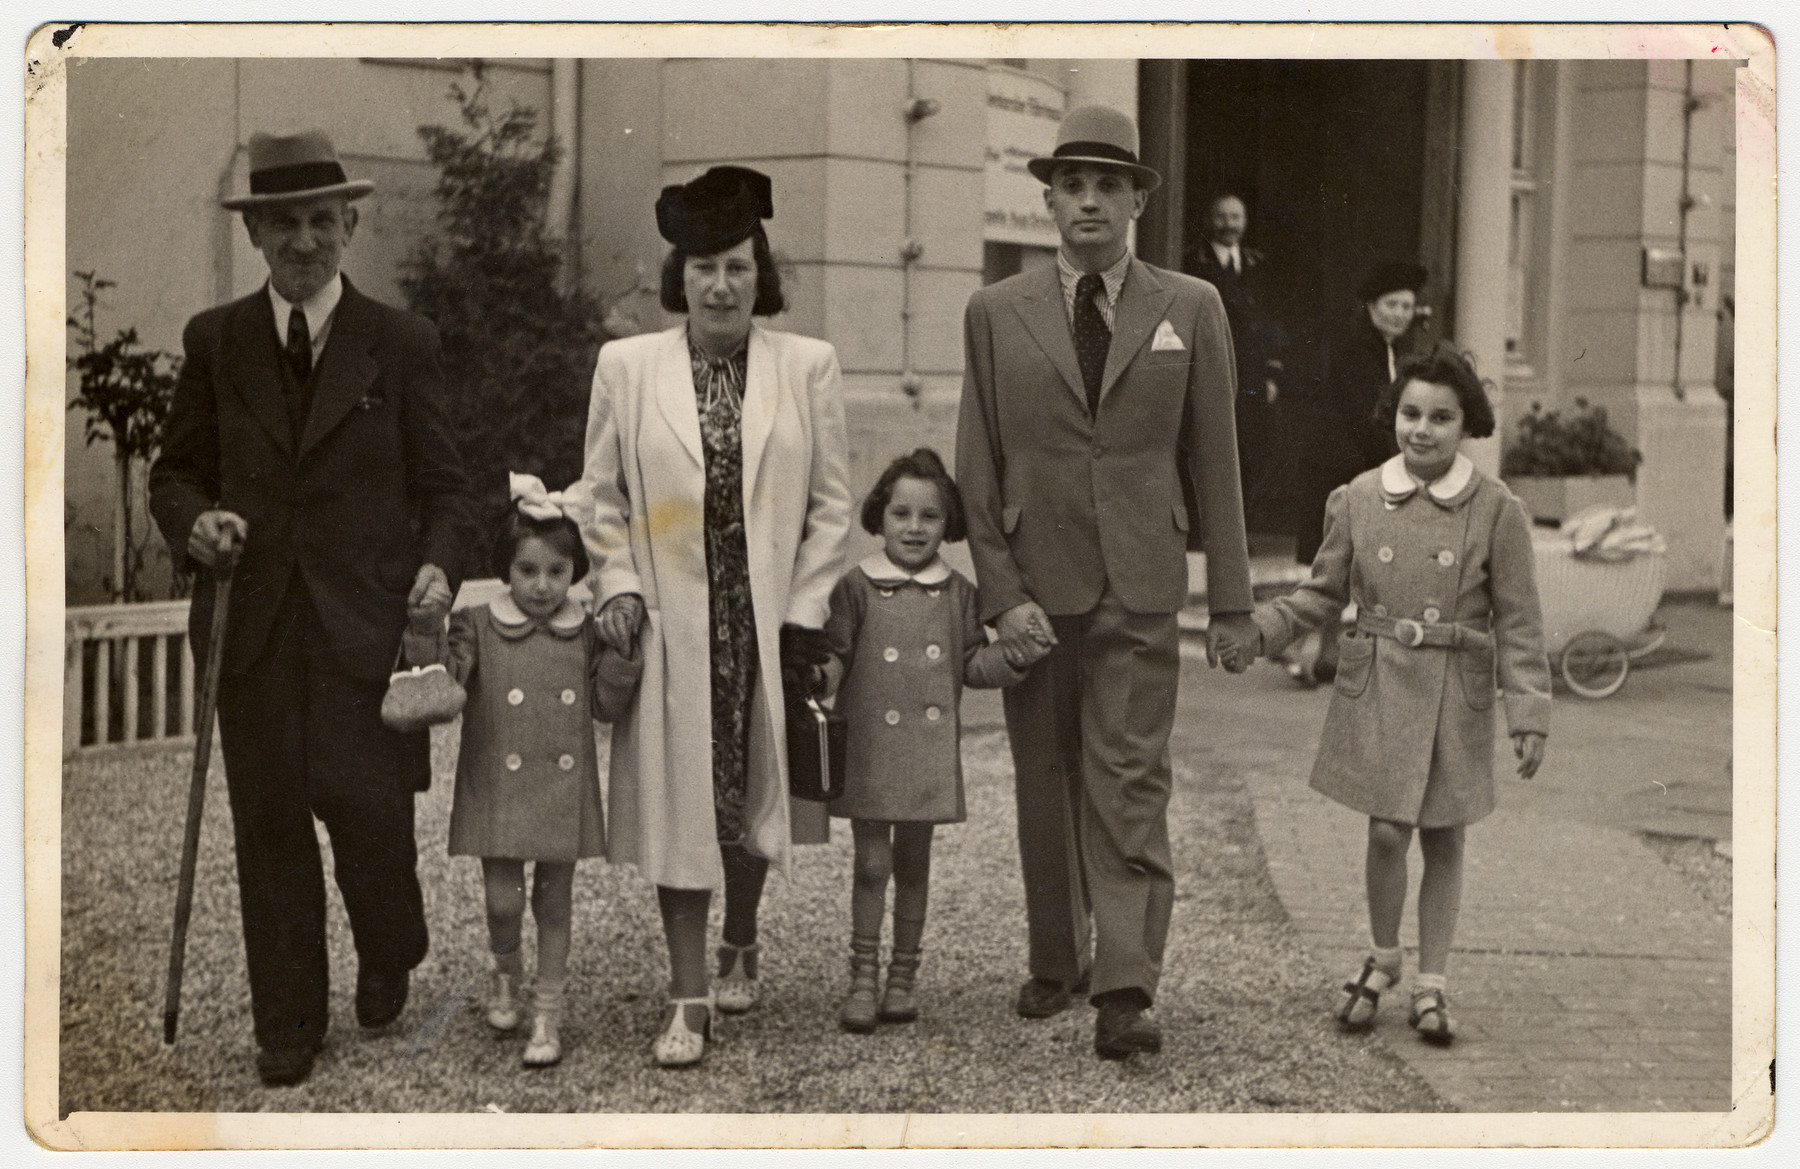 A German-Jewish family walks down a street in Hamburg prior to its departure for America.  From left to right are Wilhelm Jotkowitz, Renate, Edith, Karen, Werner and Marion Gumprecht.  Wilhelm Jotkowitz, Edith's father, was unable to leave with the others and later perished in the Mintz ghetto.